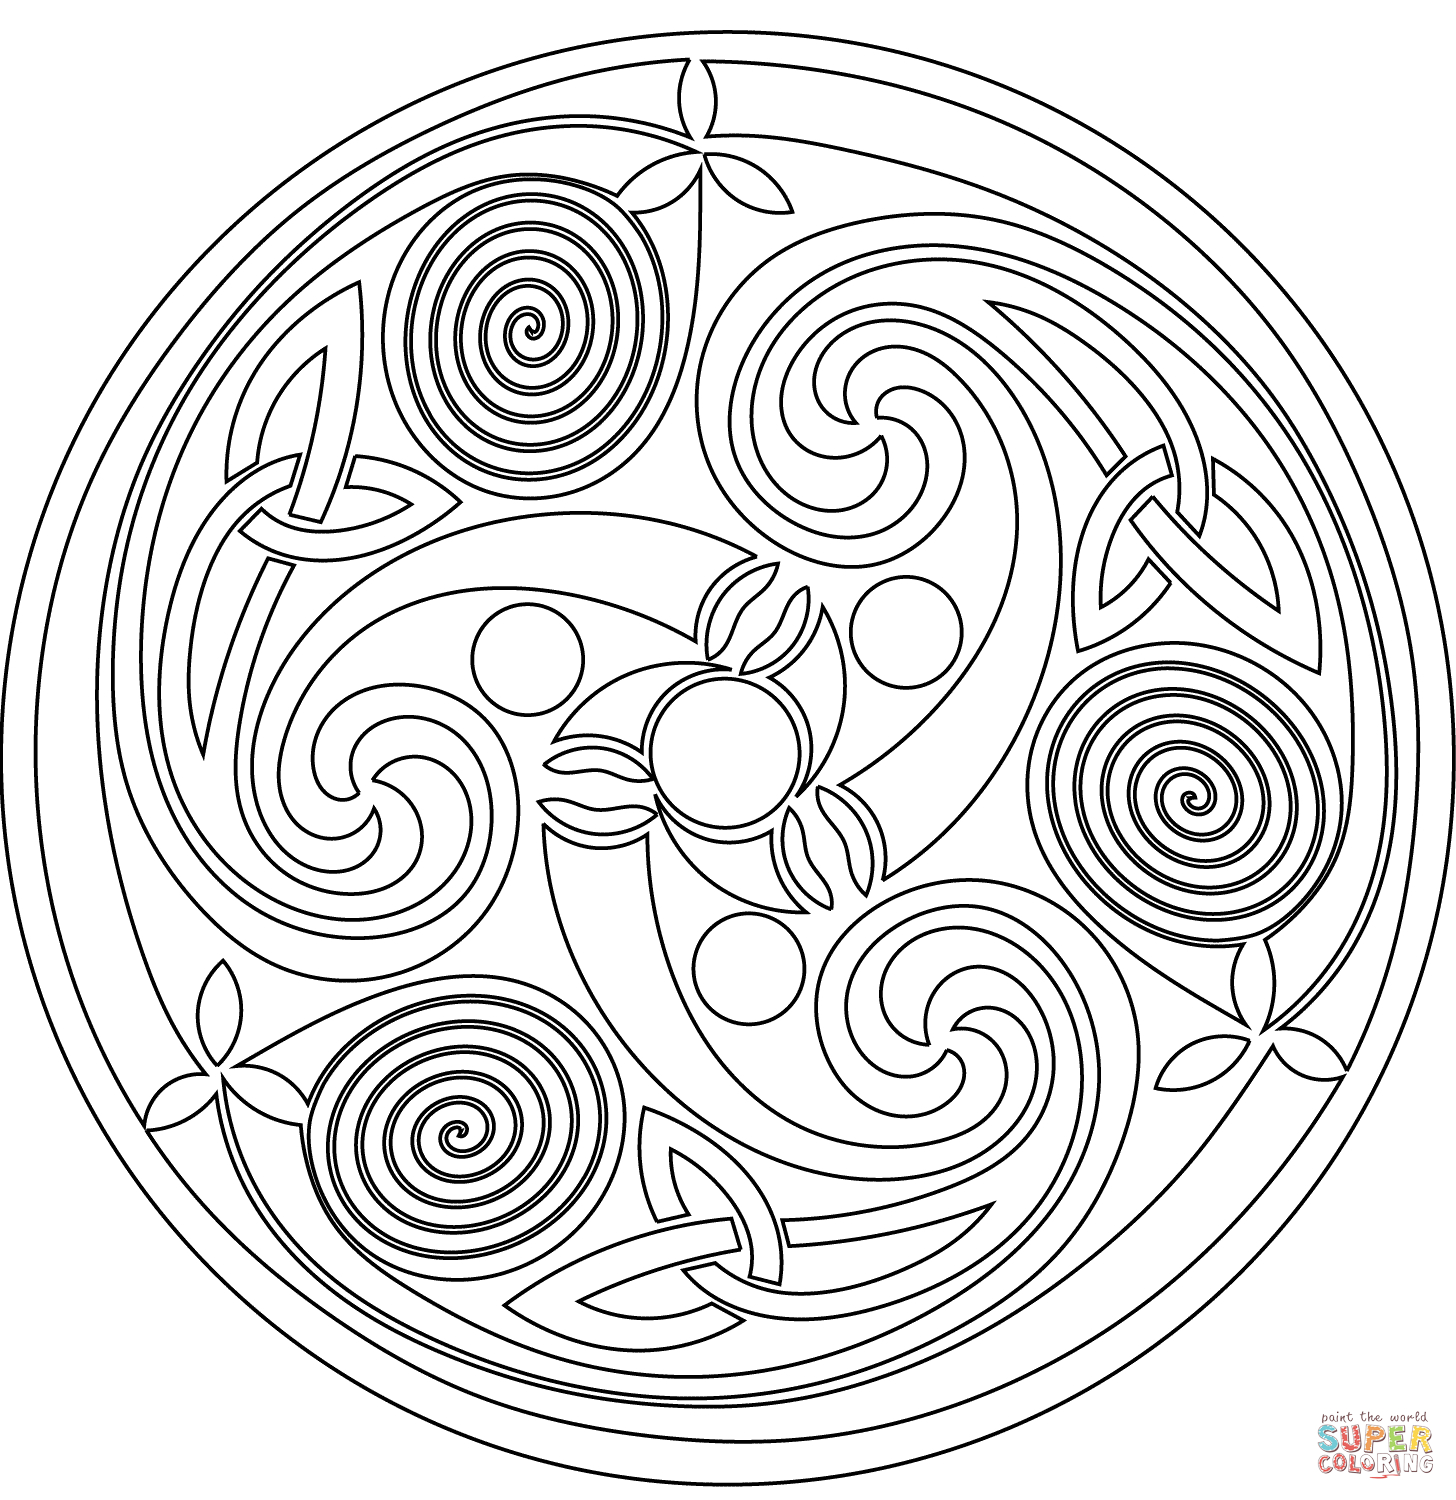 Celtic Mandalas Coloring Pages to Print 20p - Free For Children